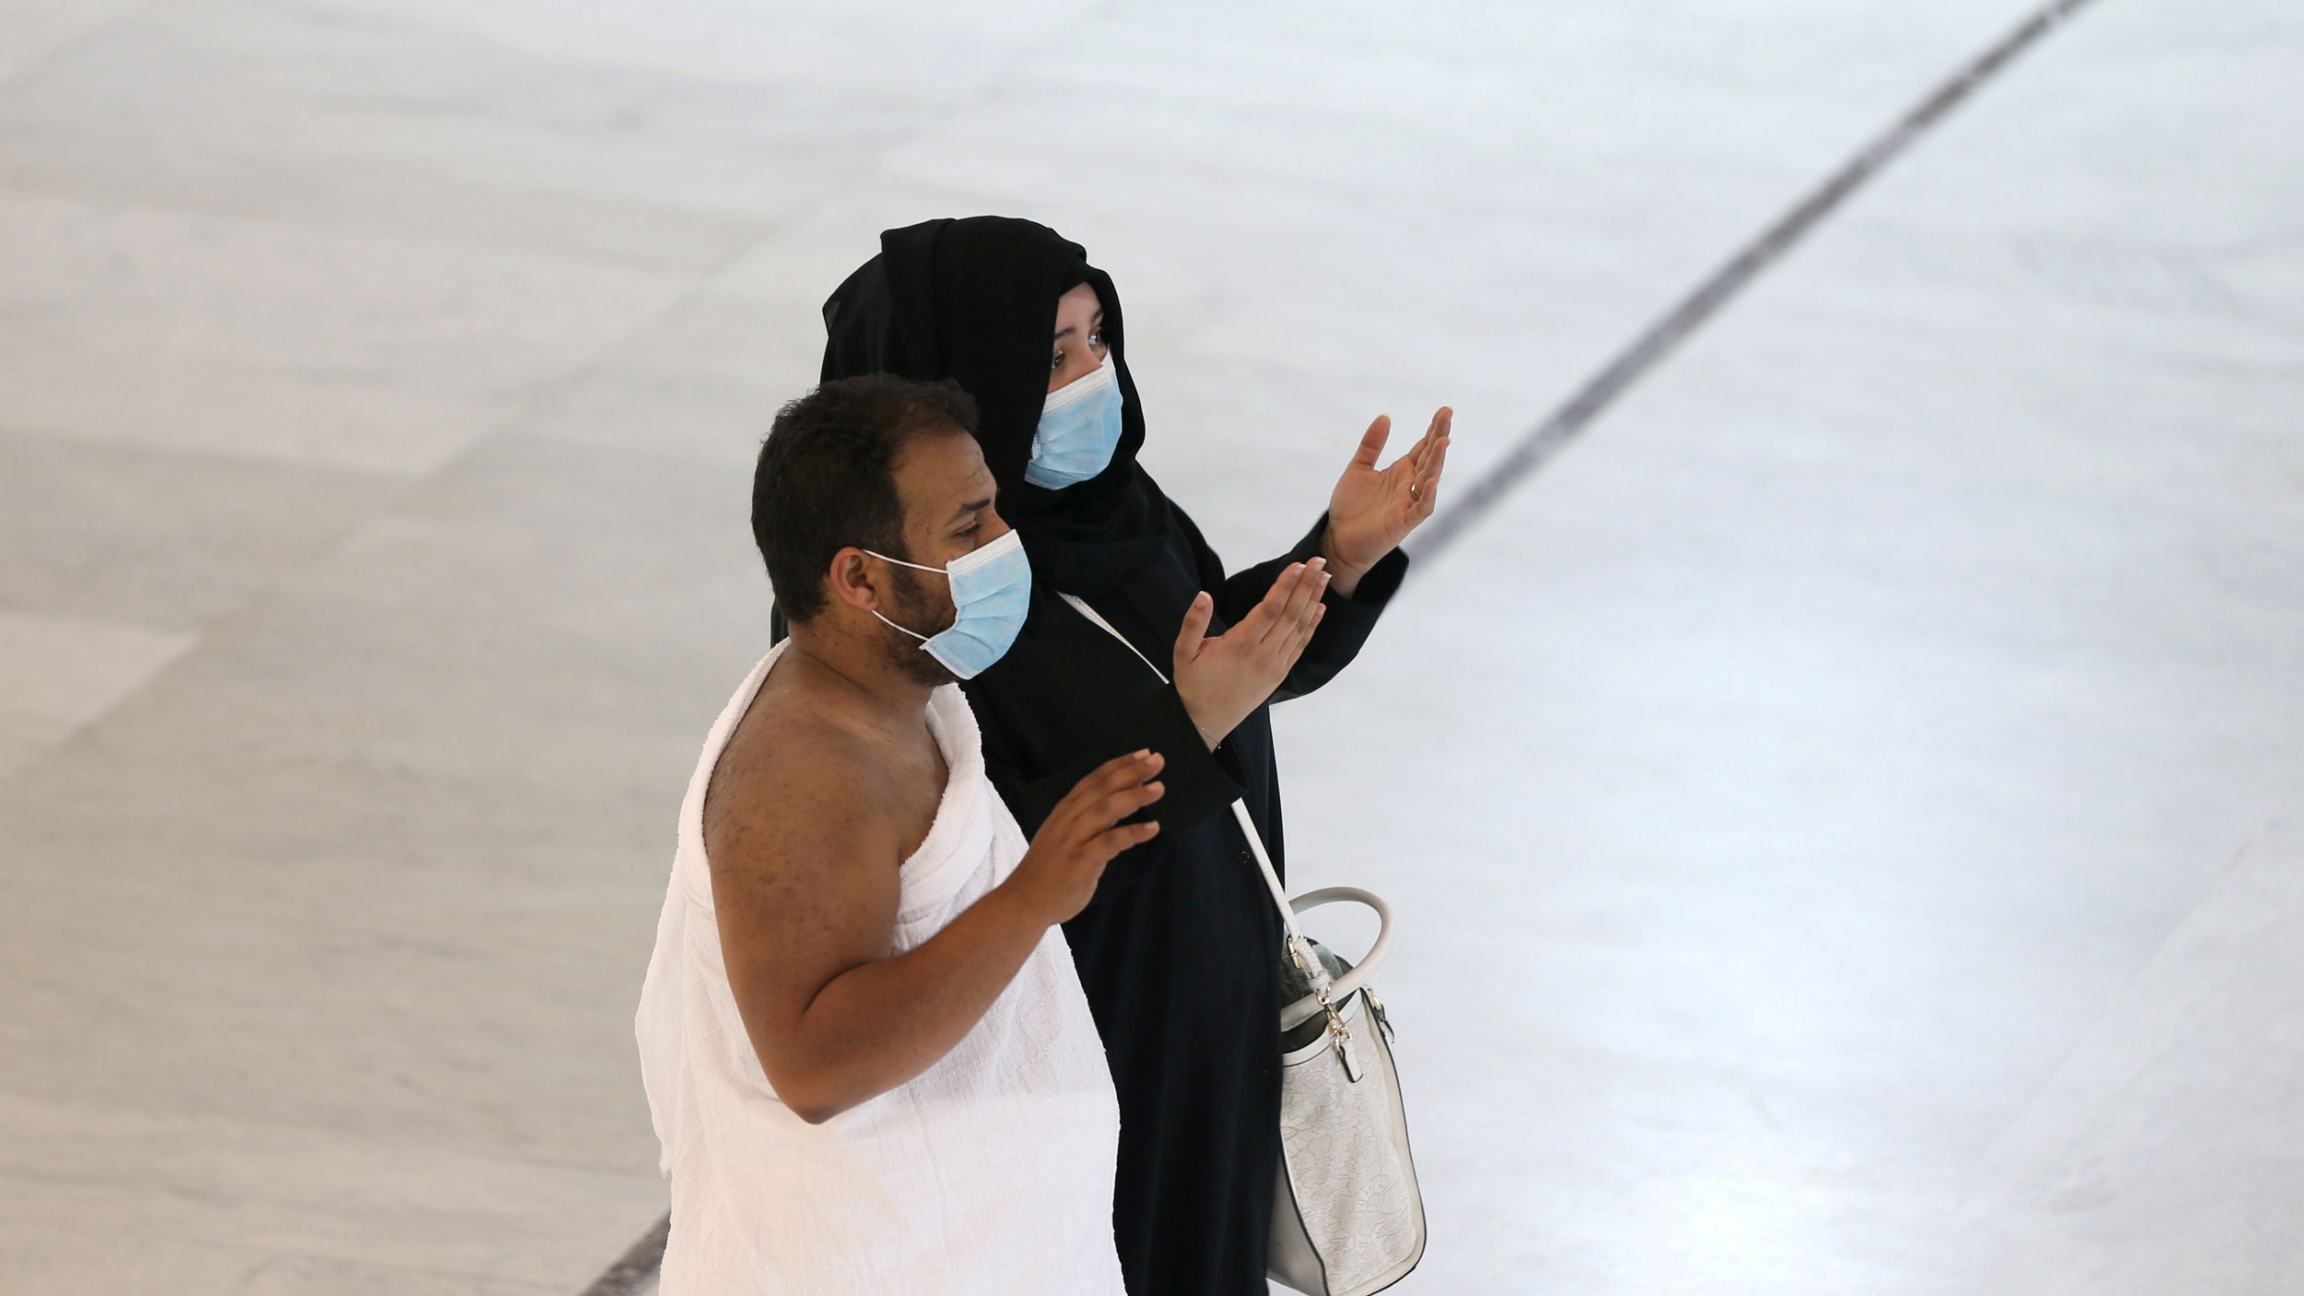 A man and woman are shown standing with their hands in the air and wearing face masks.